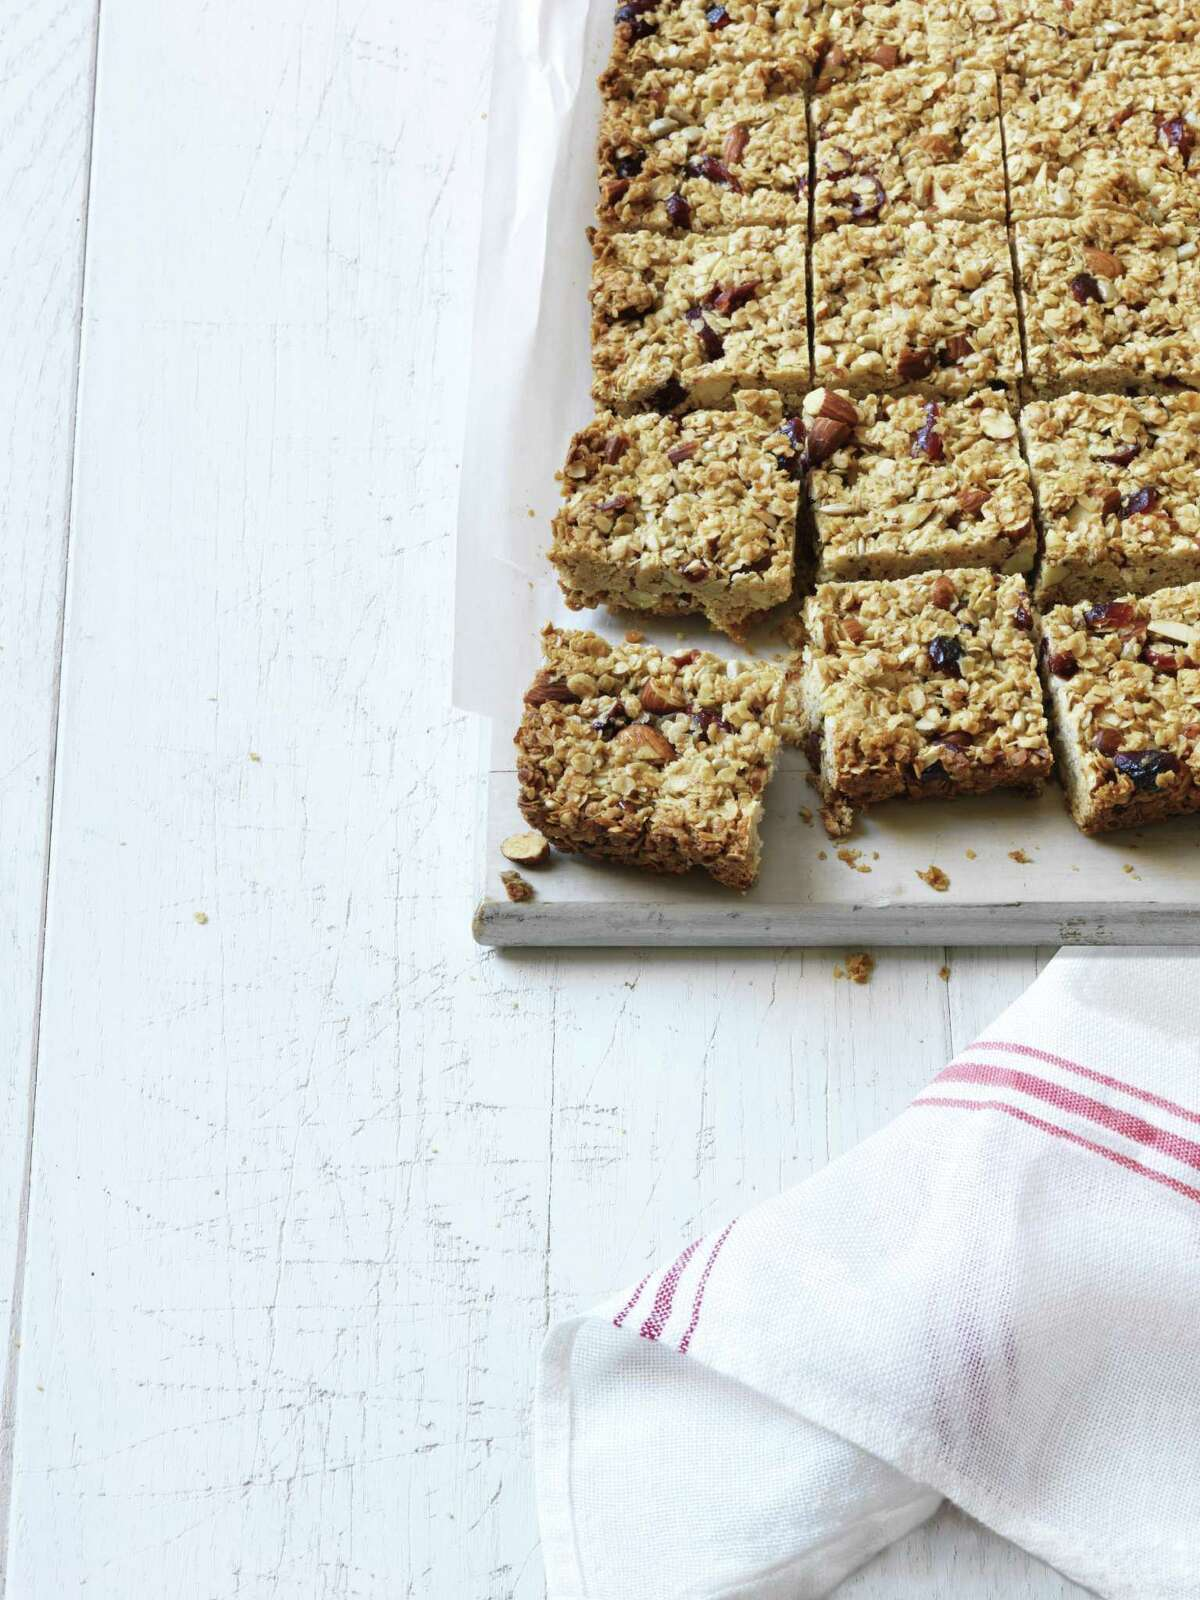 Women's Day recipe for Chewy Oat Bars.